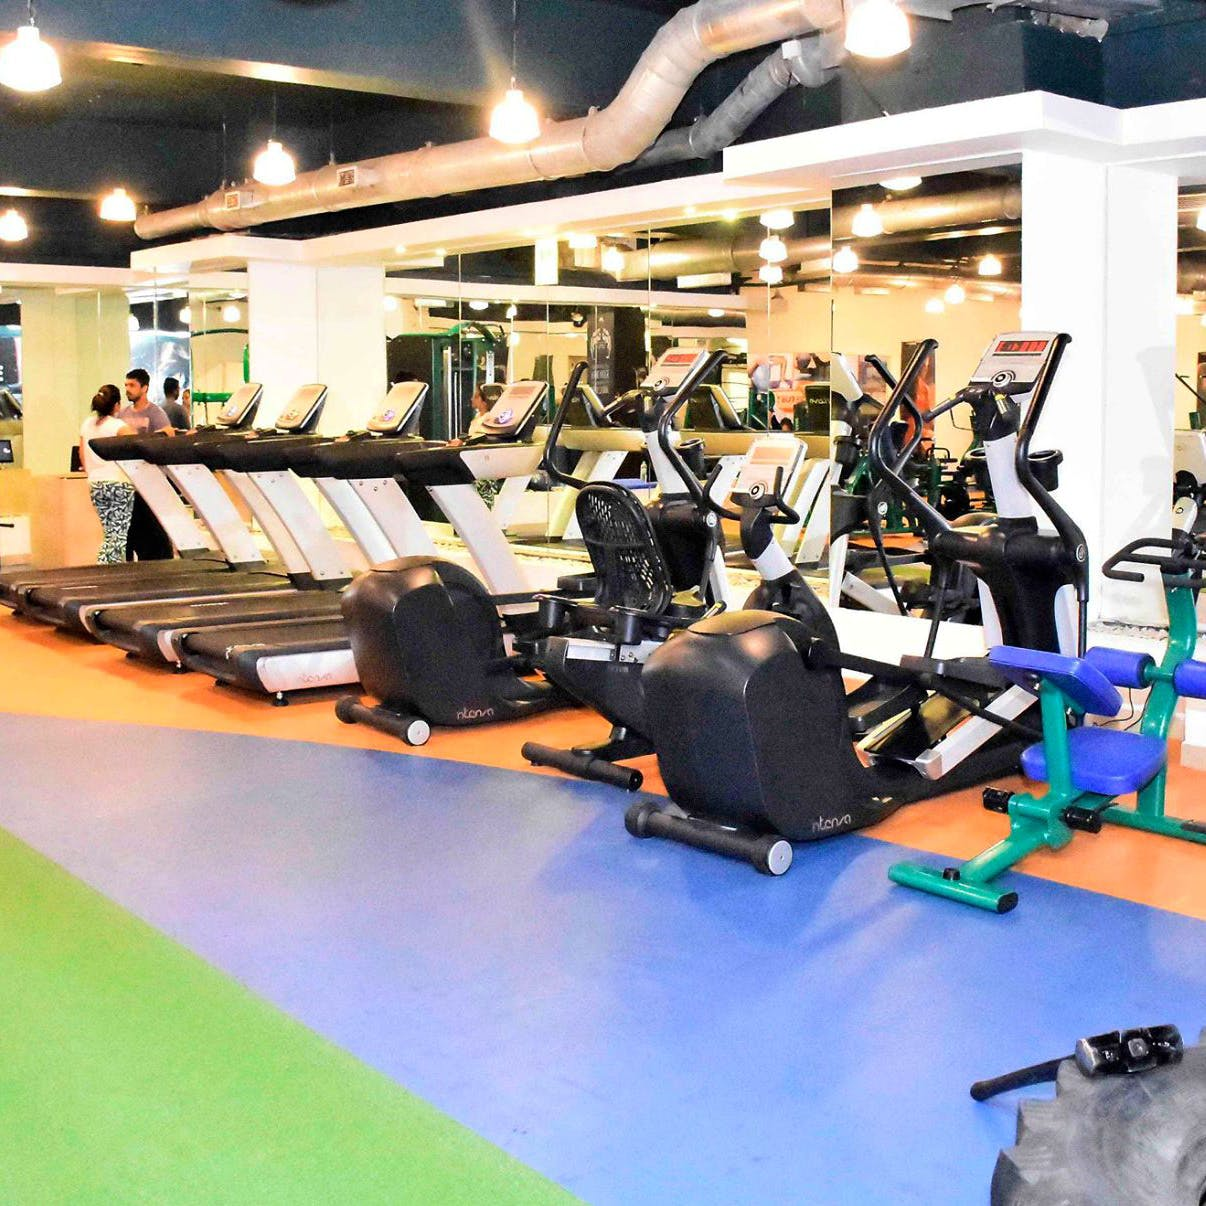 Gym,Physical fitness,Sport venue,Room,Leisure centre,Exercise,Leisure,Exercise equipment,Exercise machine,Pilates